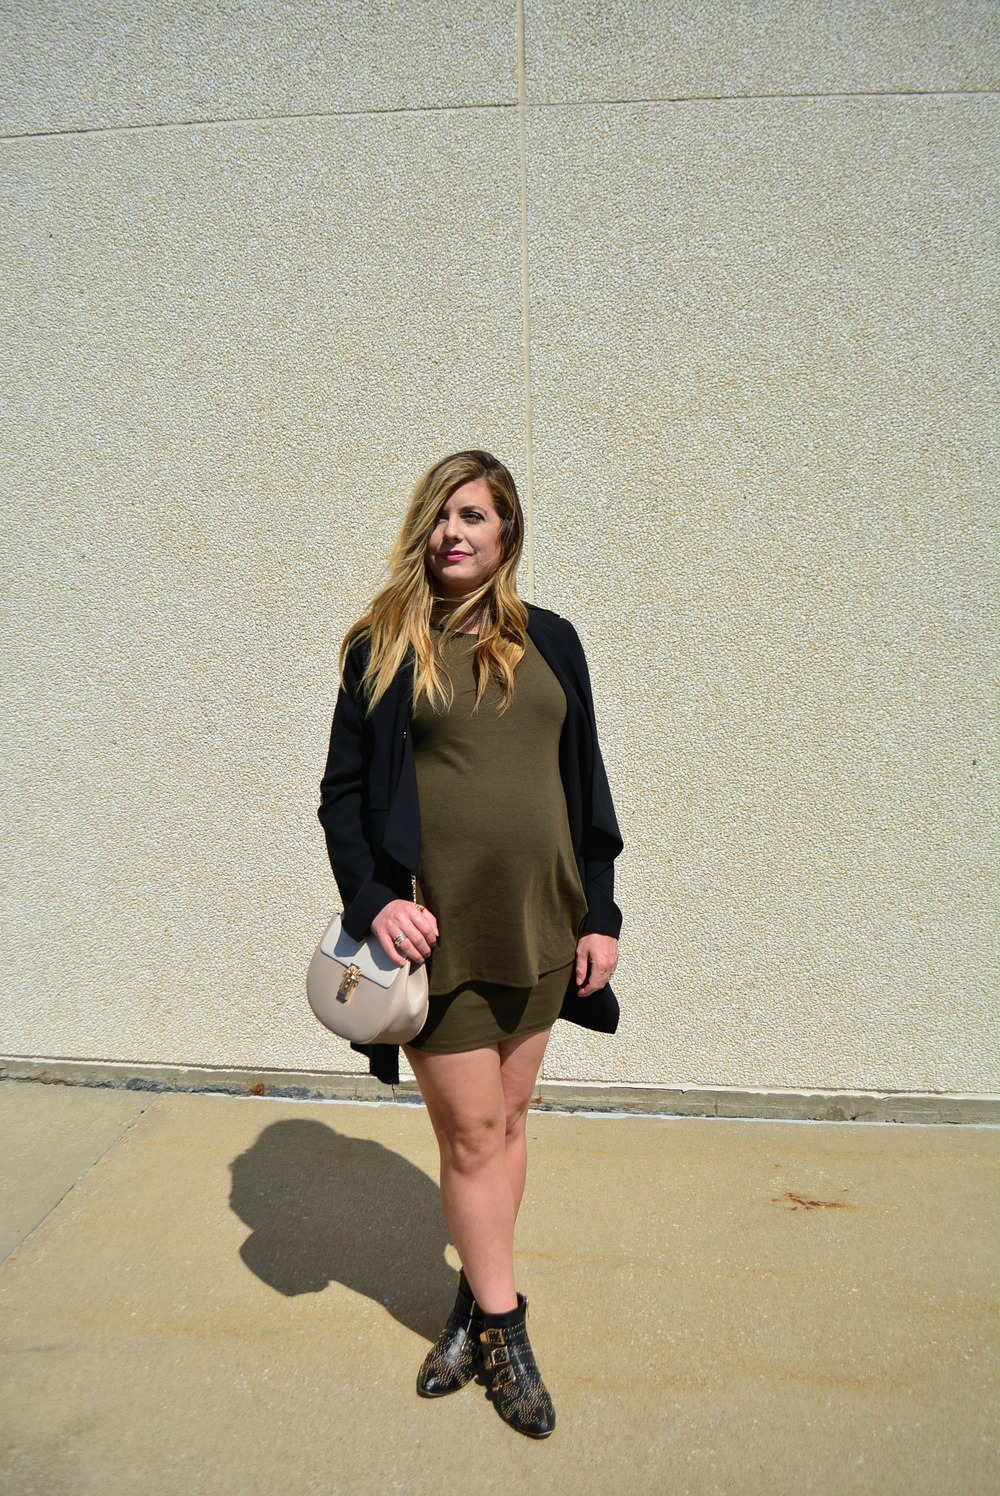 Olive green dress with black long jacket for early fall